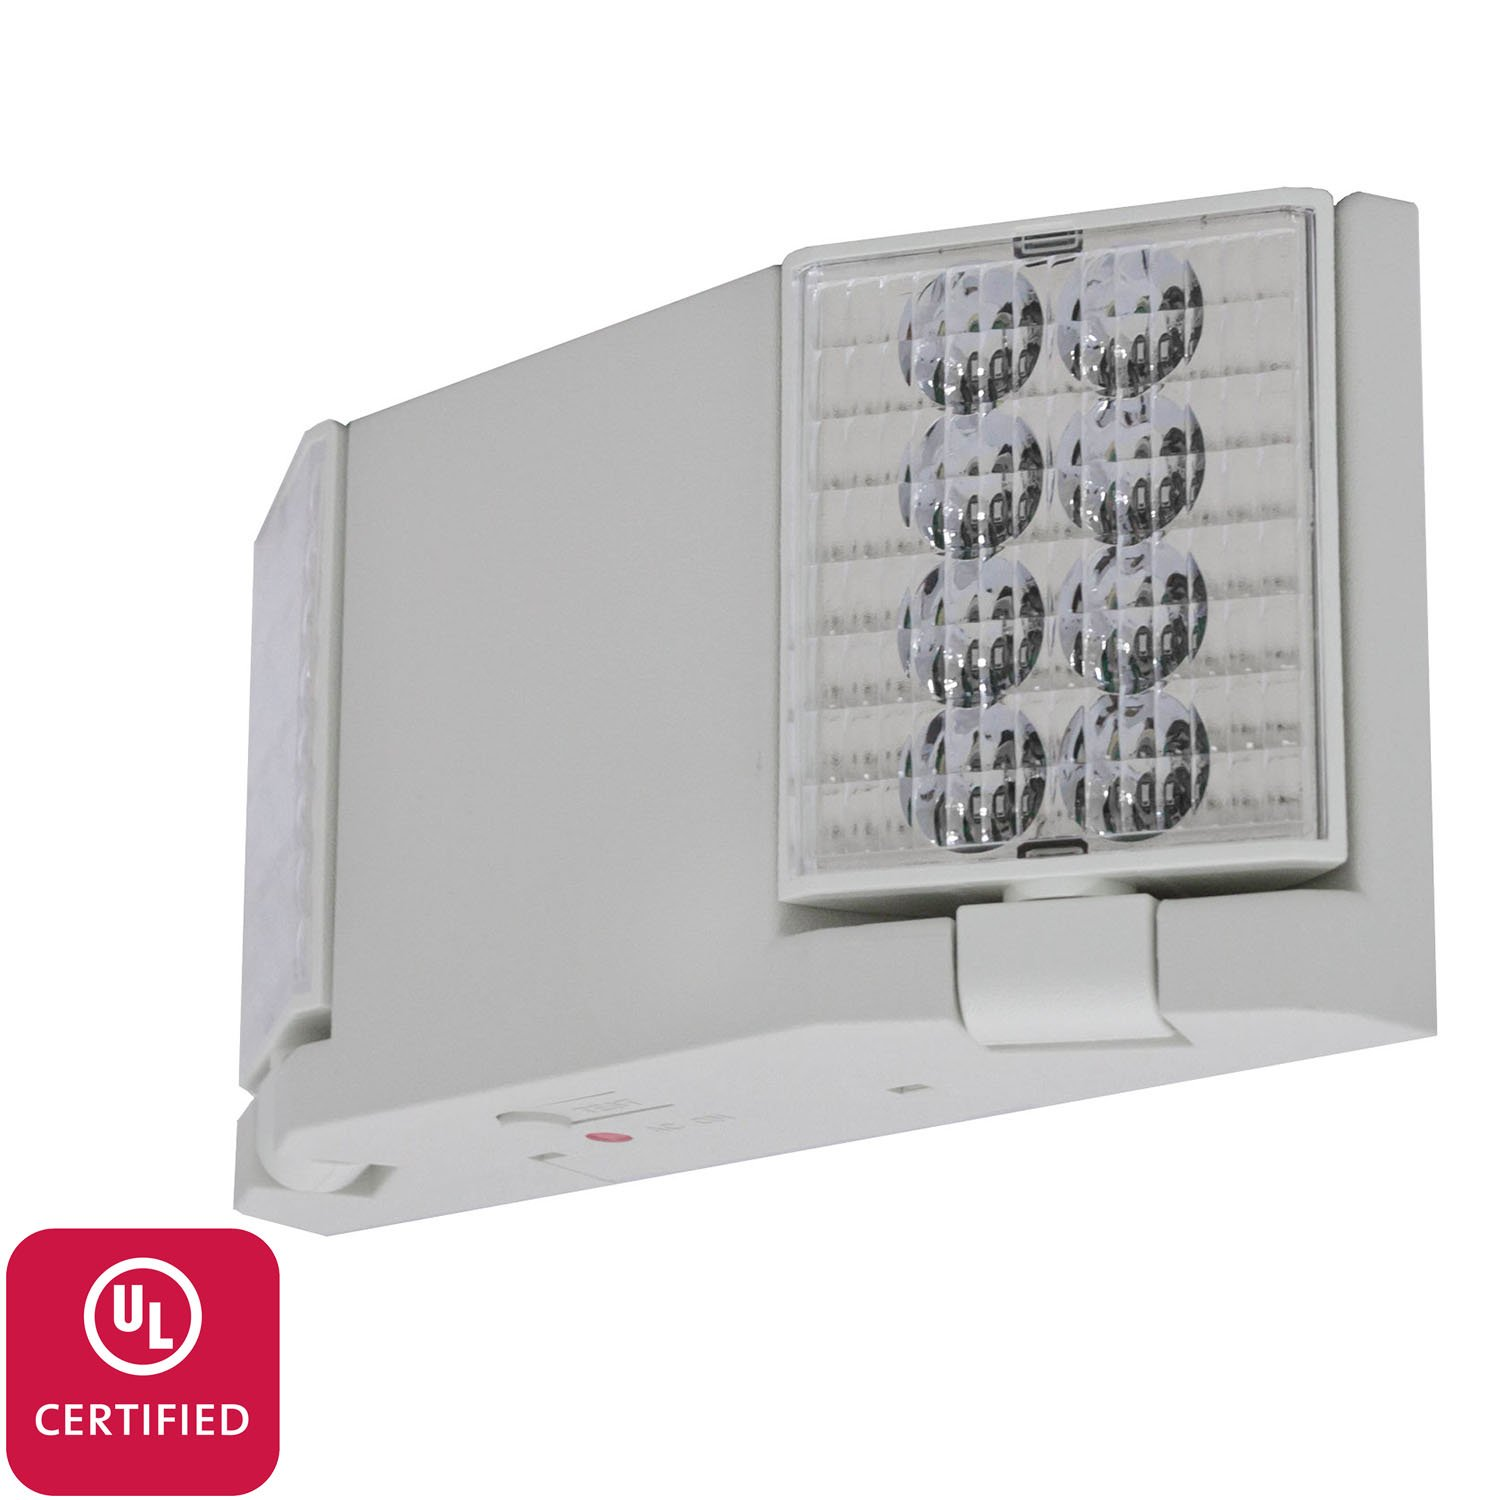 LFI Lights - UL Certified - Hardwired LED Emergency Egress Light - Flush or Adjustable Heads - ELFW2